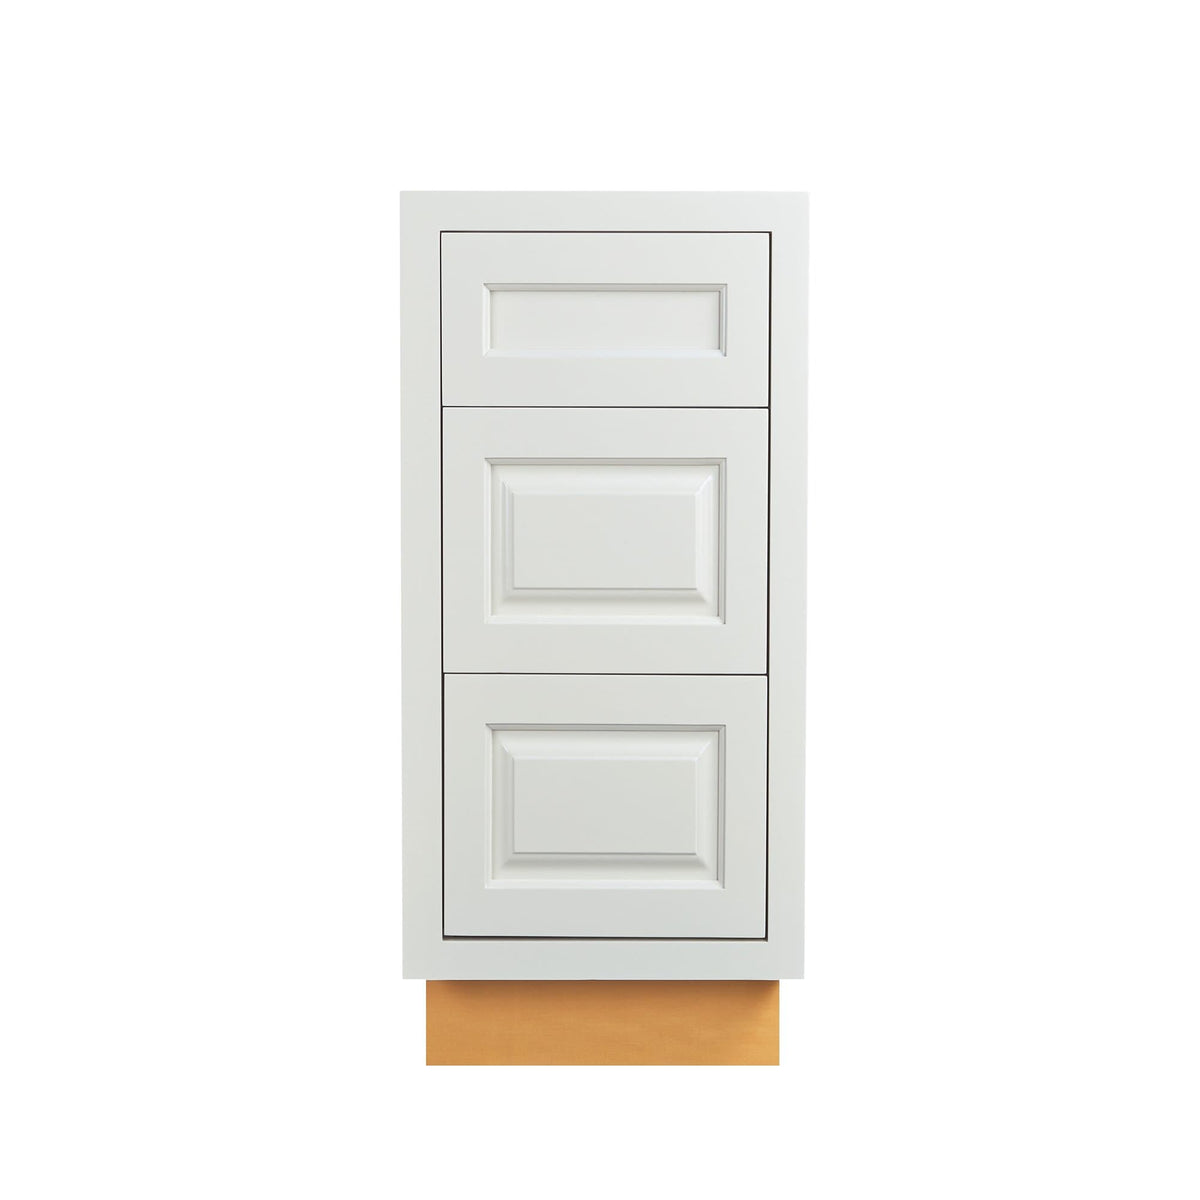 "Base Cabinet Bathroom Vanity 3 Drawer Base Vintage White Inset Raised Panel Cabinets - 21"" Deep 12"", 15"" & 18"" Wide D5VDB1521FS Inset Kitchen Cabinets"